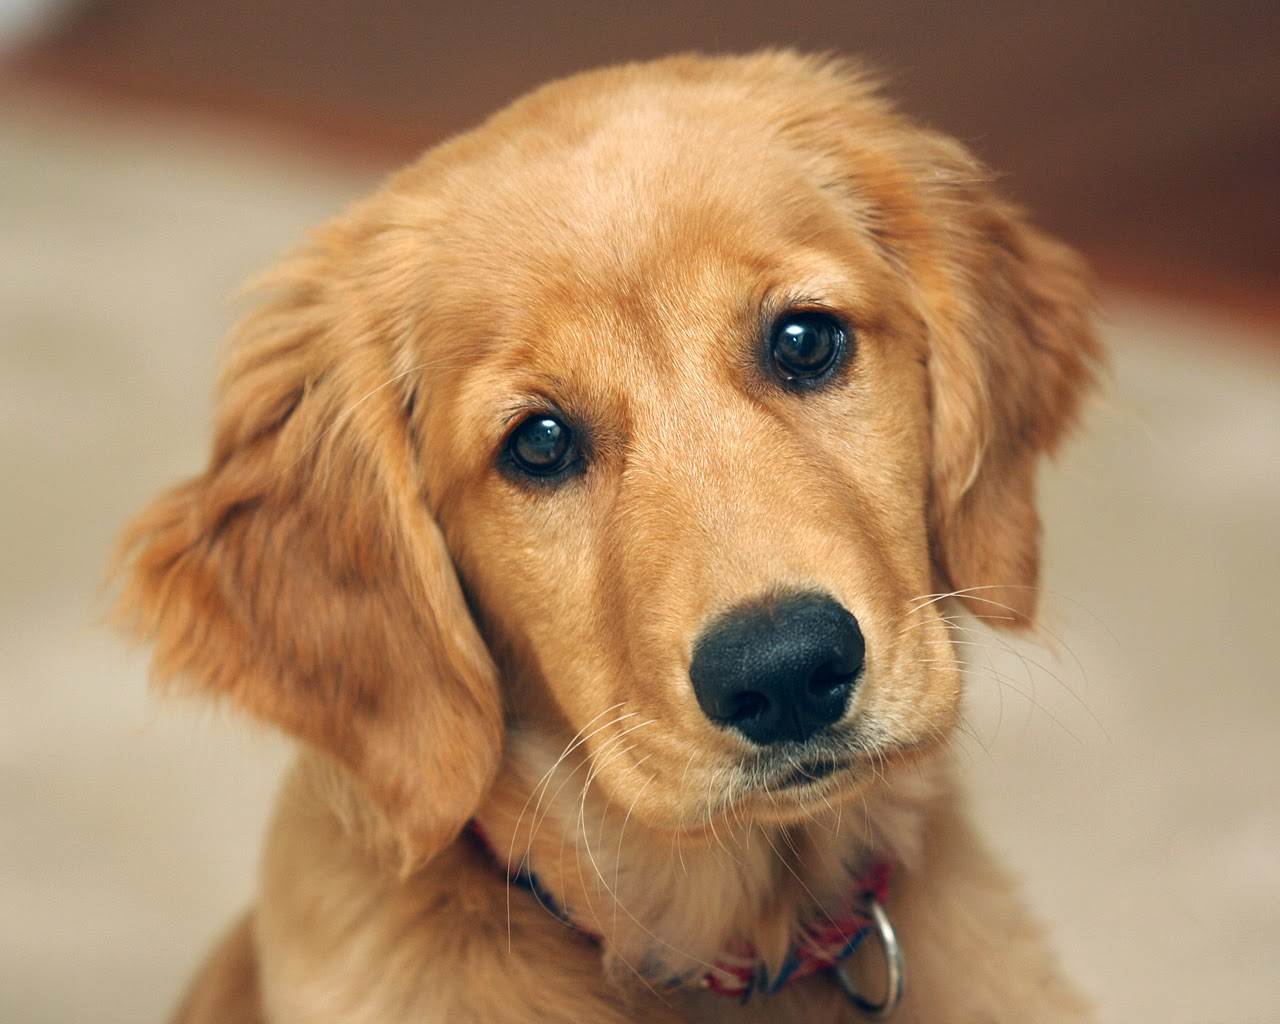 Rules of the Jungle: Golden retriever puppies